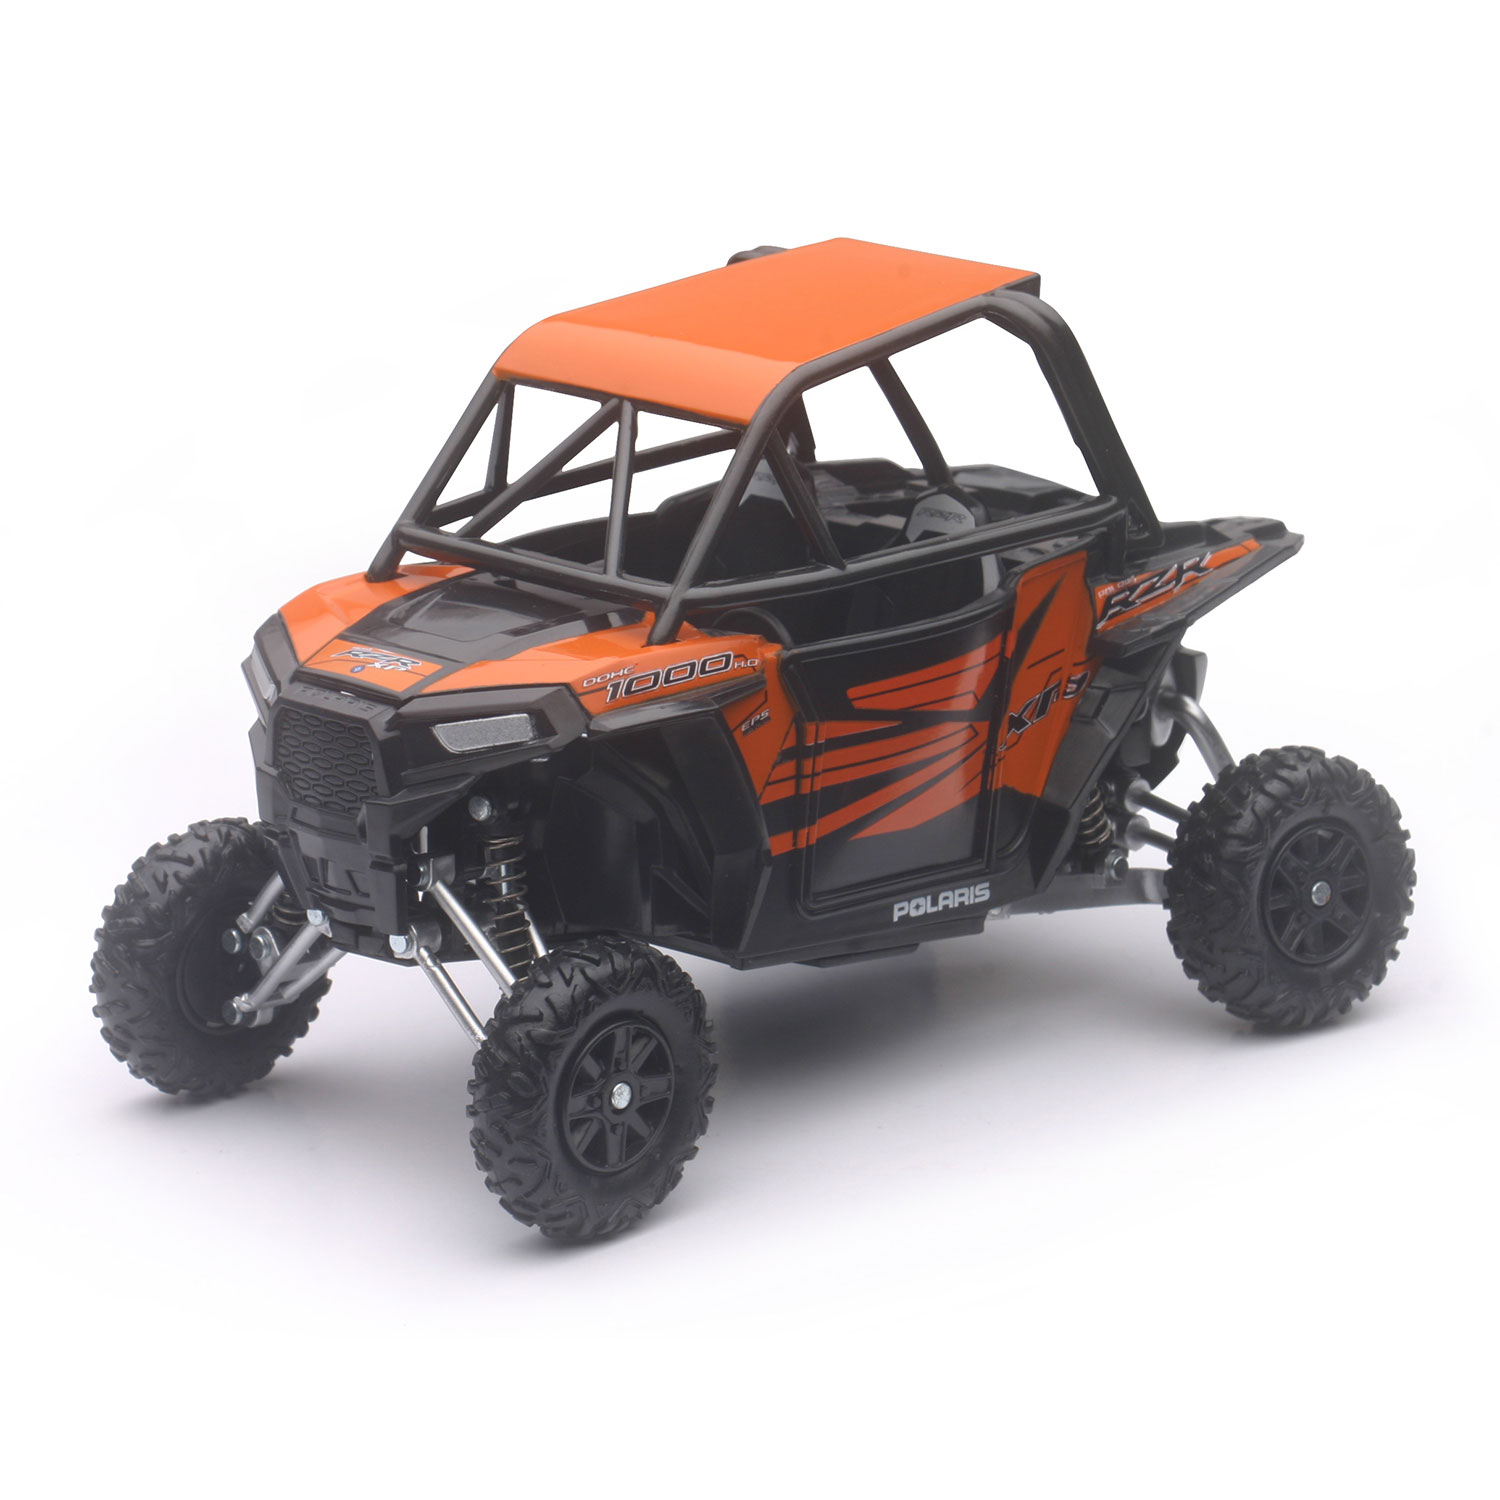 polaris rzr xp 1000 toy orange polaris rzr. Black Bedroom Furniture Sets. Home Design Ideas